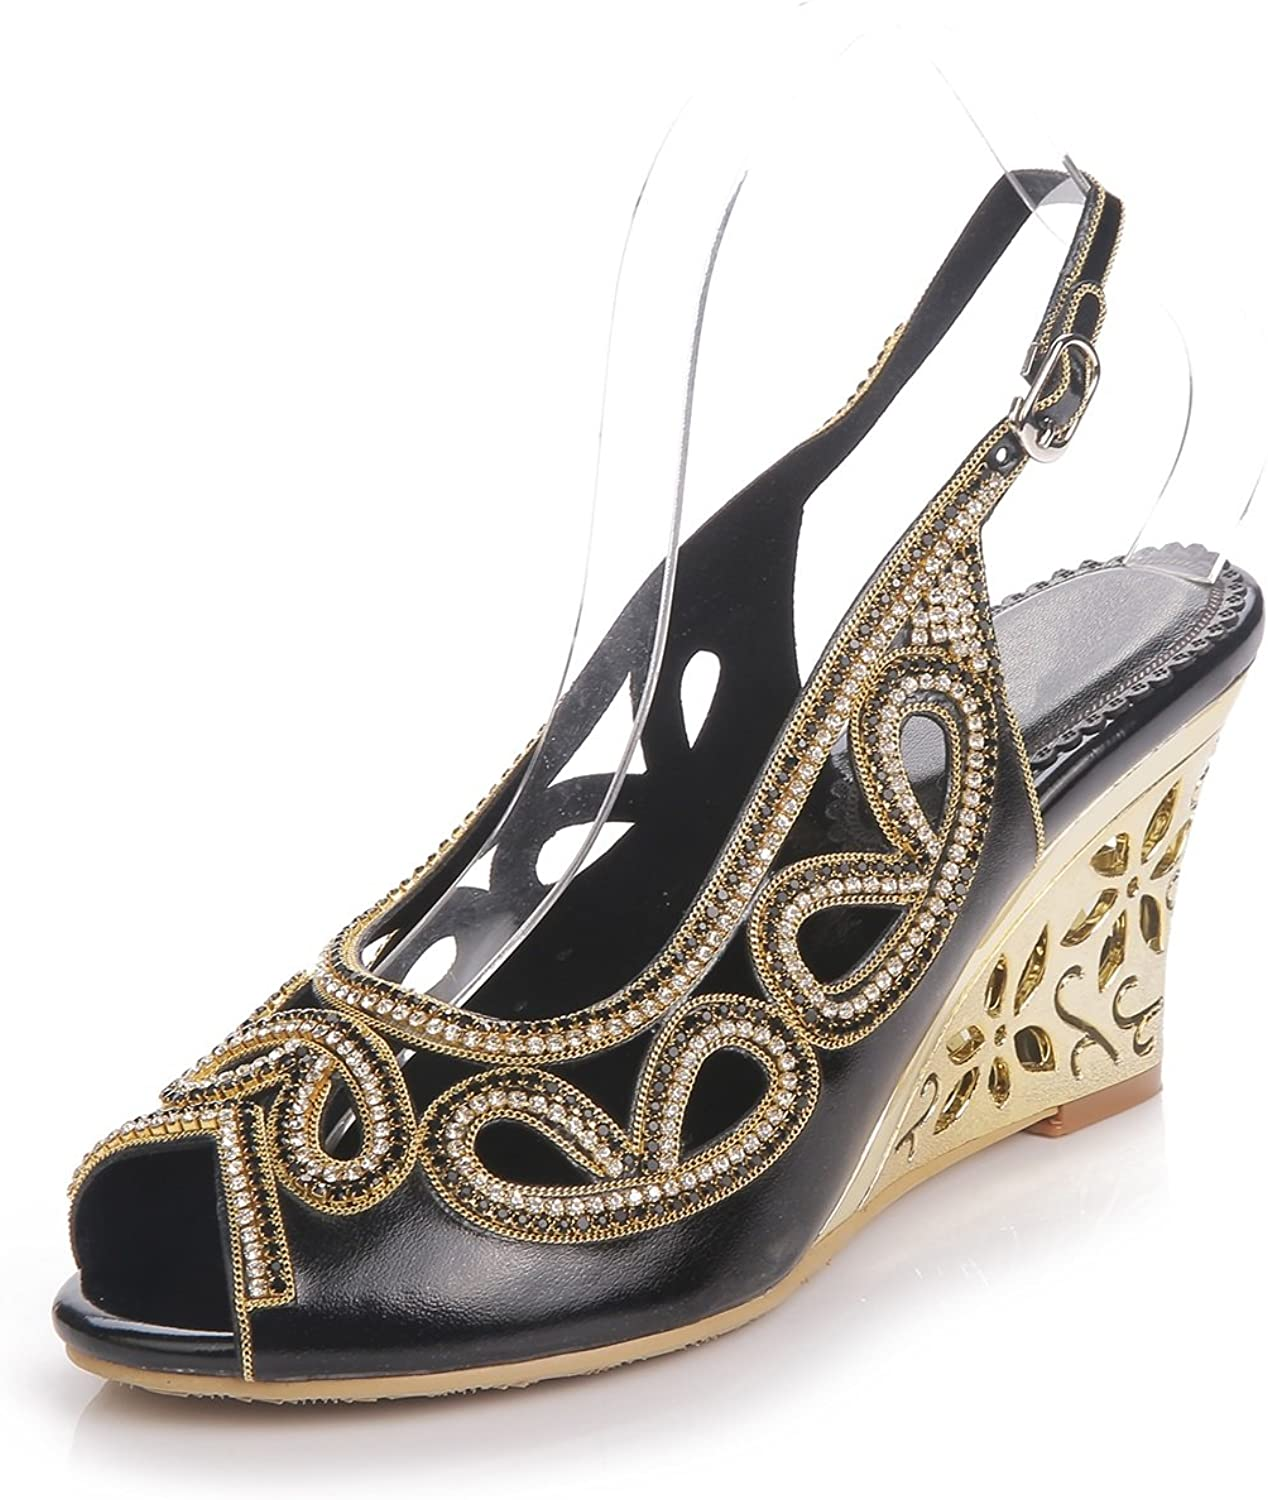 Women's shoes Fish Mouth shoes Spring Summer Fashion Boots Wedge Heel Sandals Open Toe Rhinestone Crystal Sparkling Glitter Buckle for Dress Party